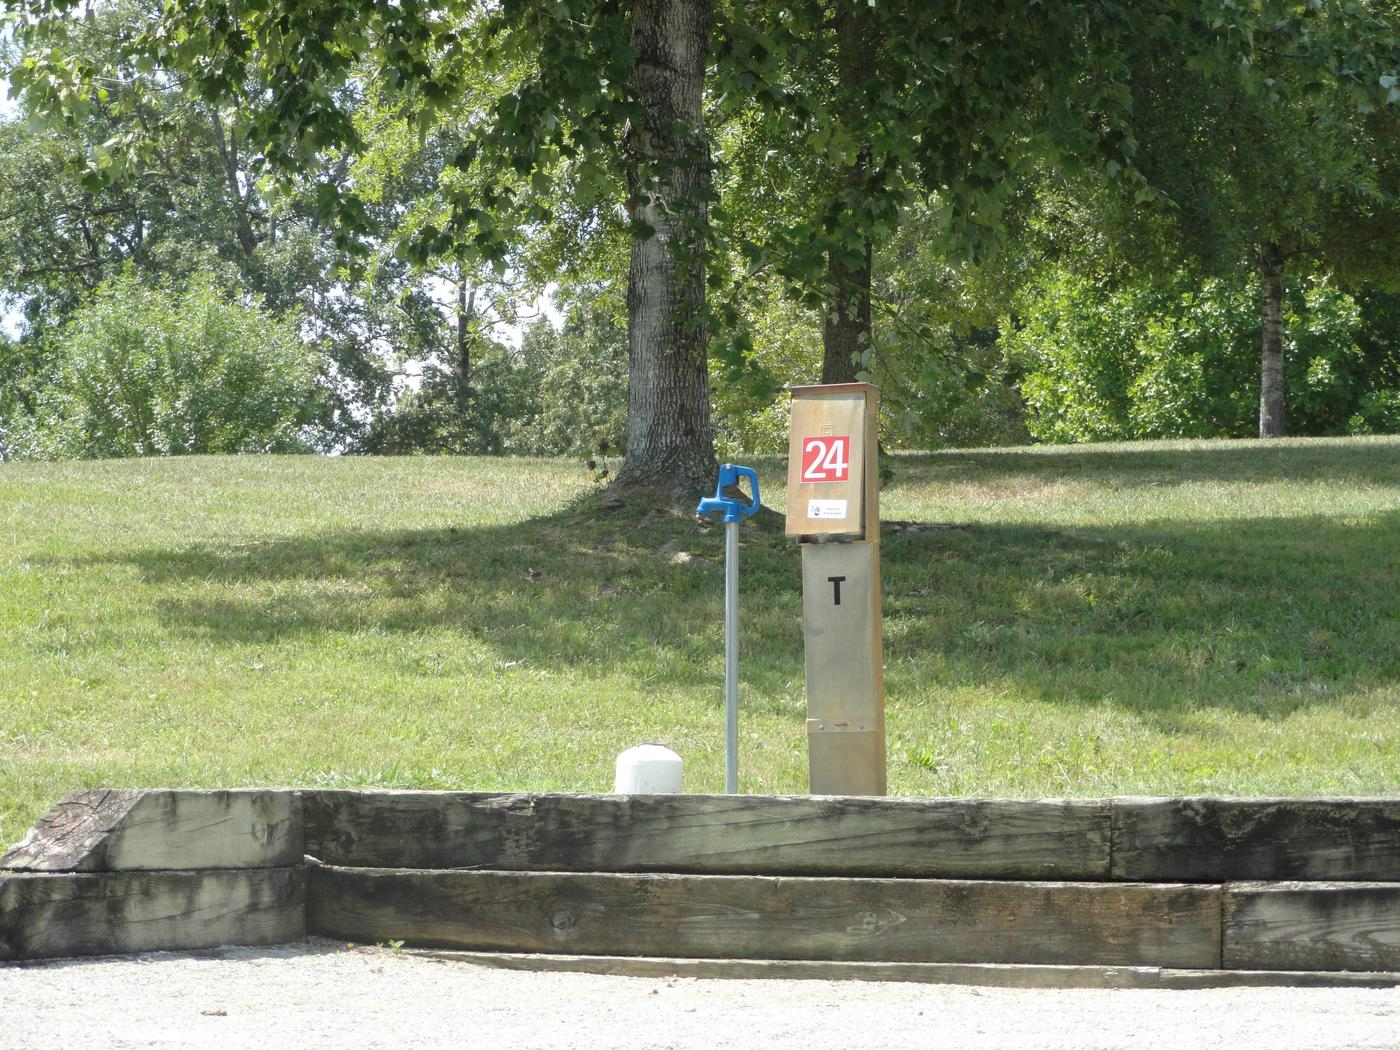 WILLOW GROVE CAMPGROUND SITE #24 PEDESTAL AND WATERWILLOW GROVE CAMPGROUND SITE #24 WHITE CAP IS WATER VALVE, NOT SEWER